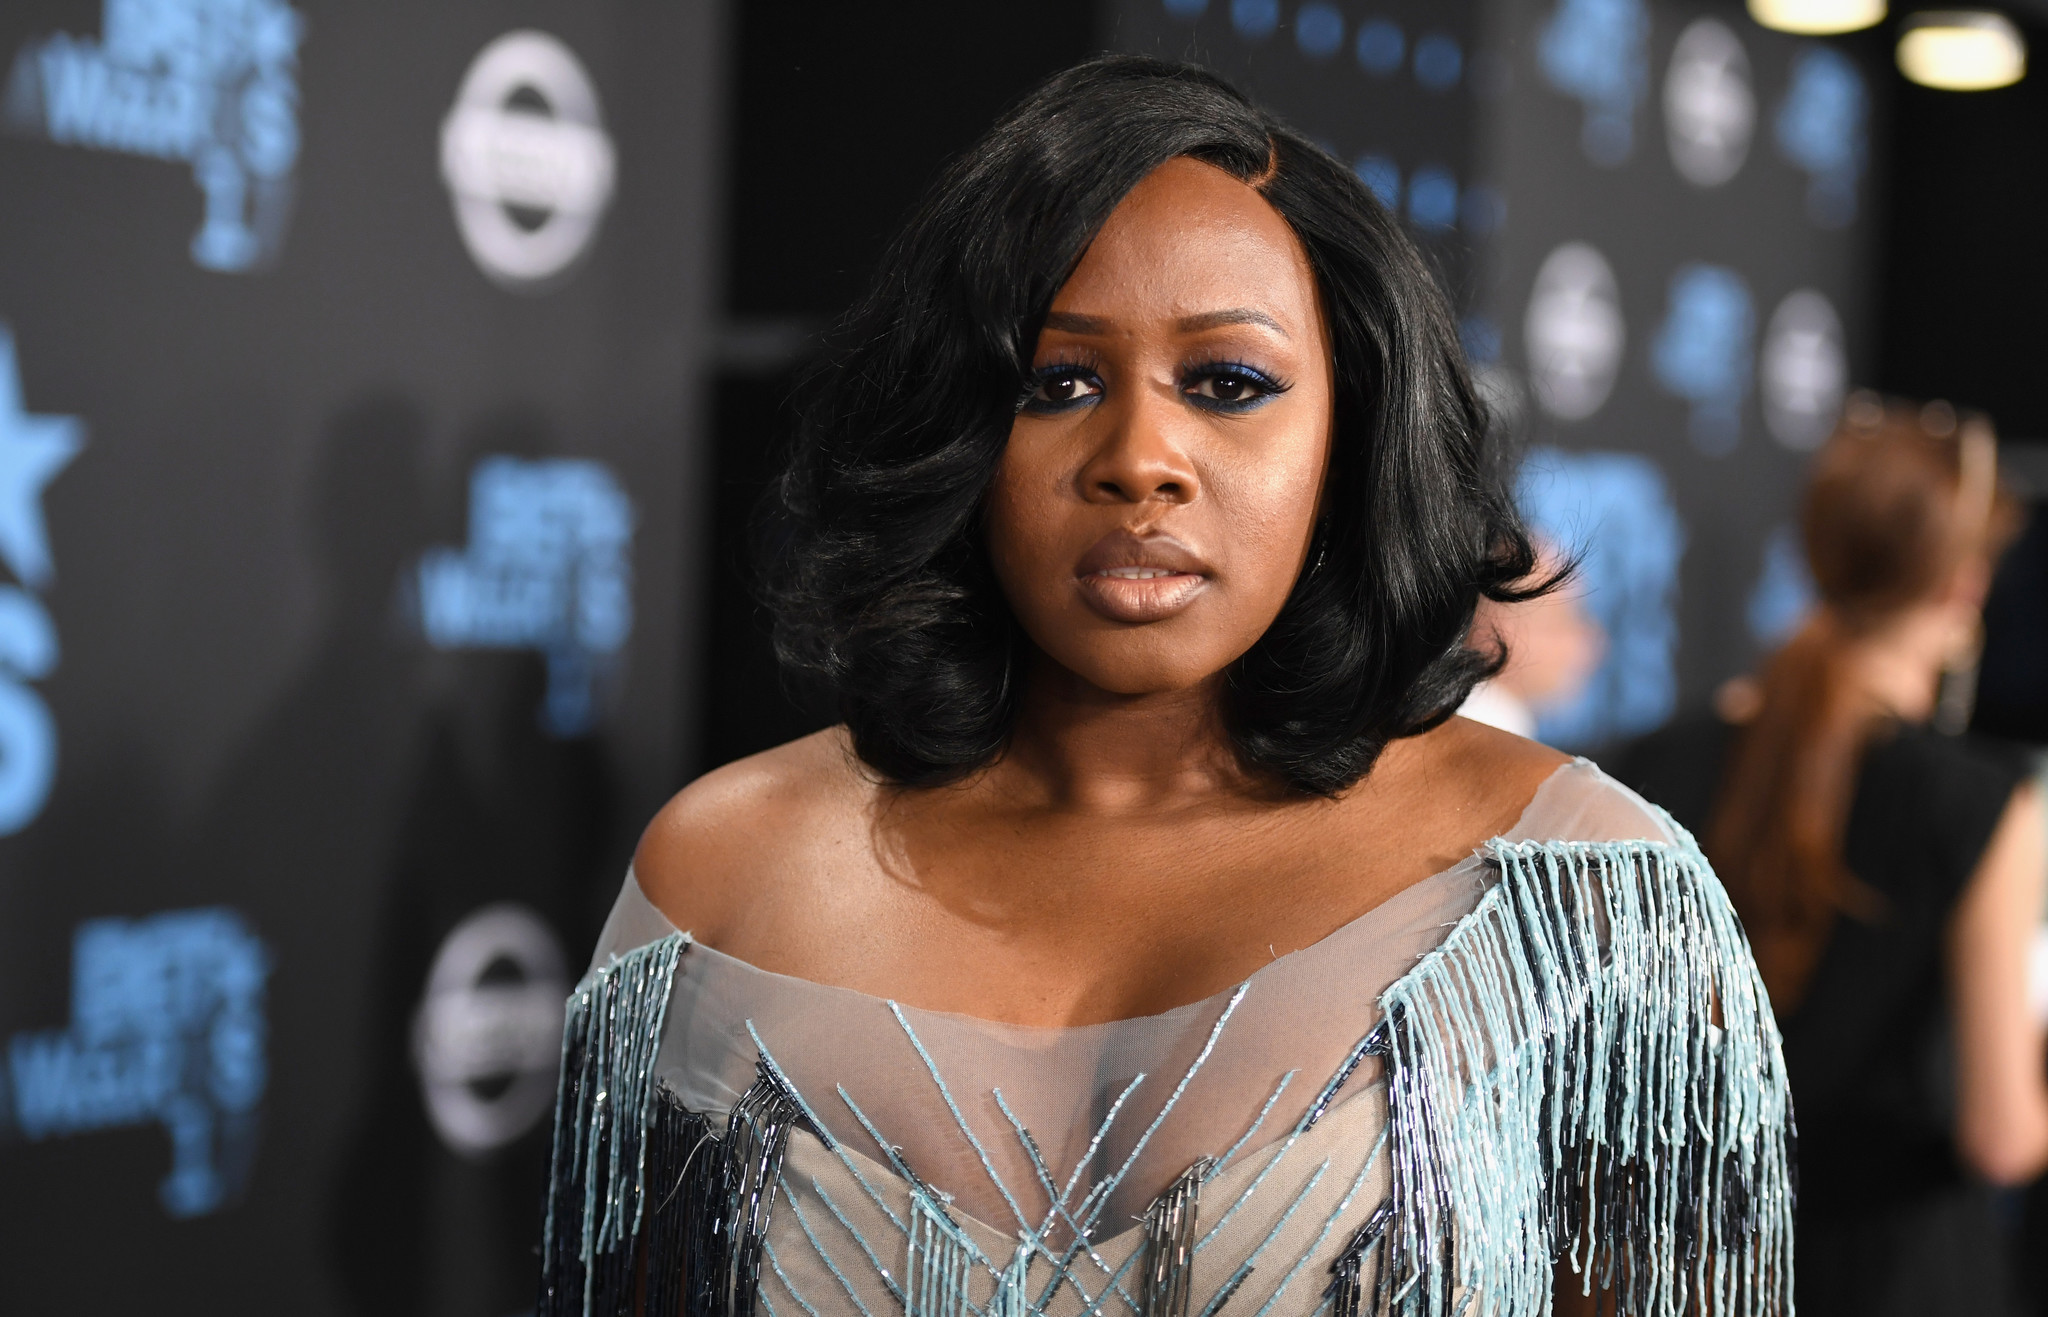 Remy Ma Supports Women Who Have Been Negatively Impacted By Incarceration - People Show Her Love For The Initiative